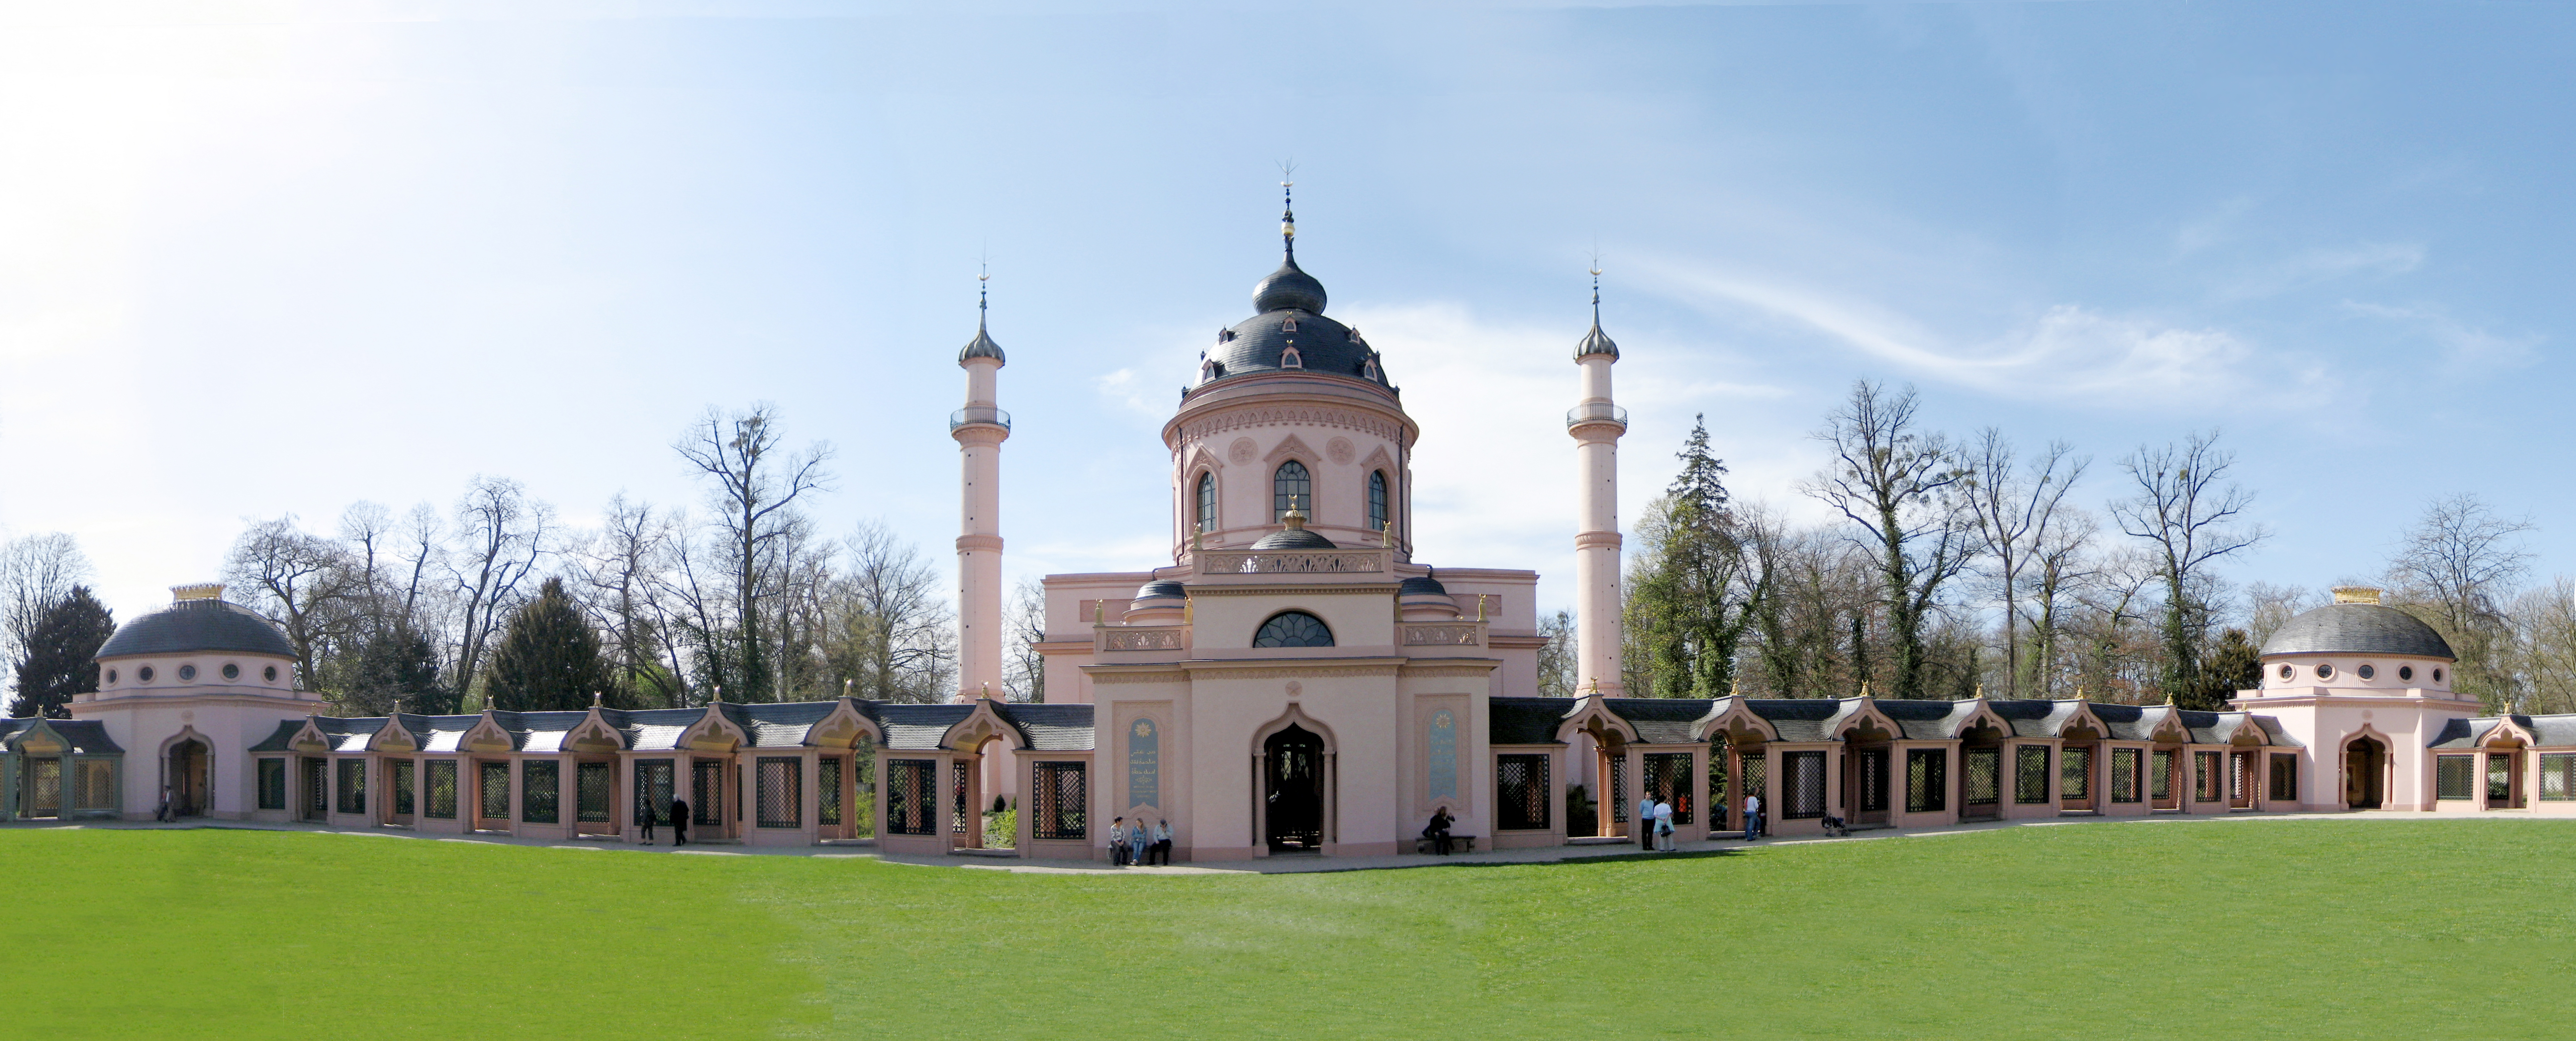 Moschee mit Wandelgängen. (Quelle Andree Stephan via Wikimedia Commons, CC-BY-SA 3.0)